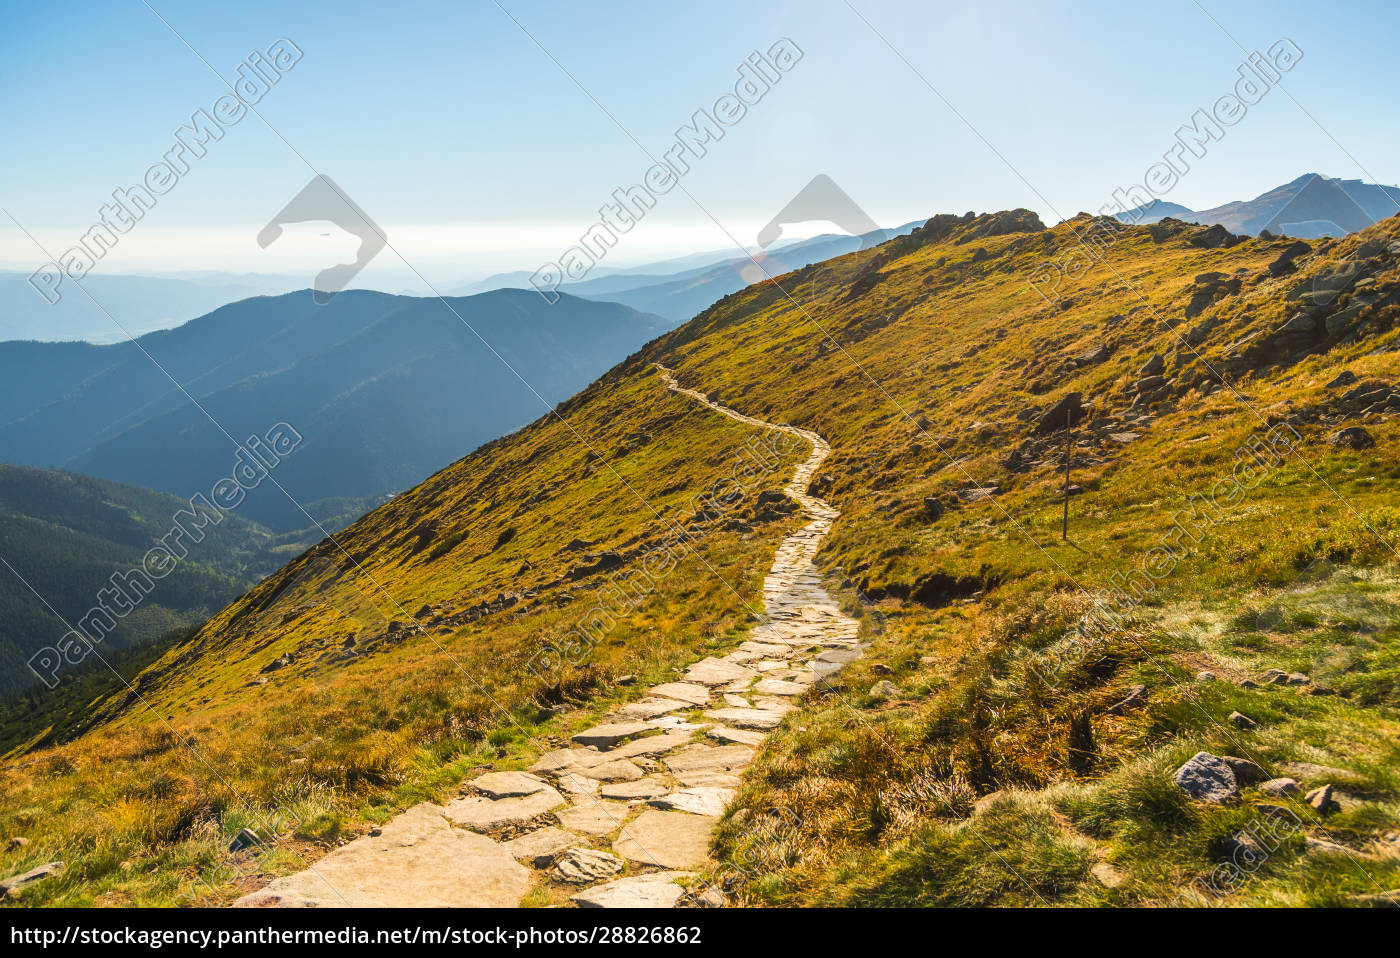 hiking, trail, in, the, mountains - 28826862